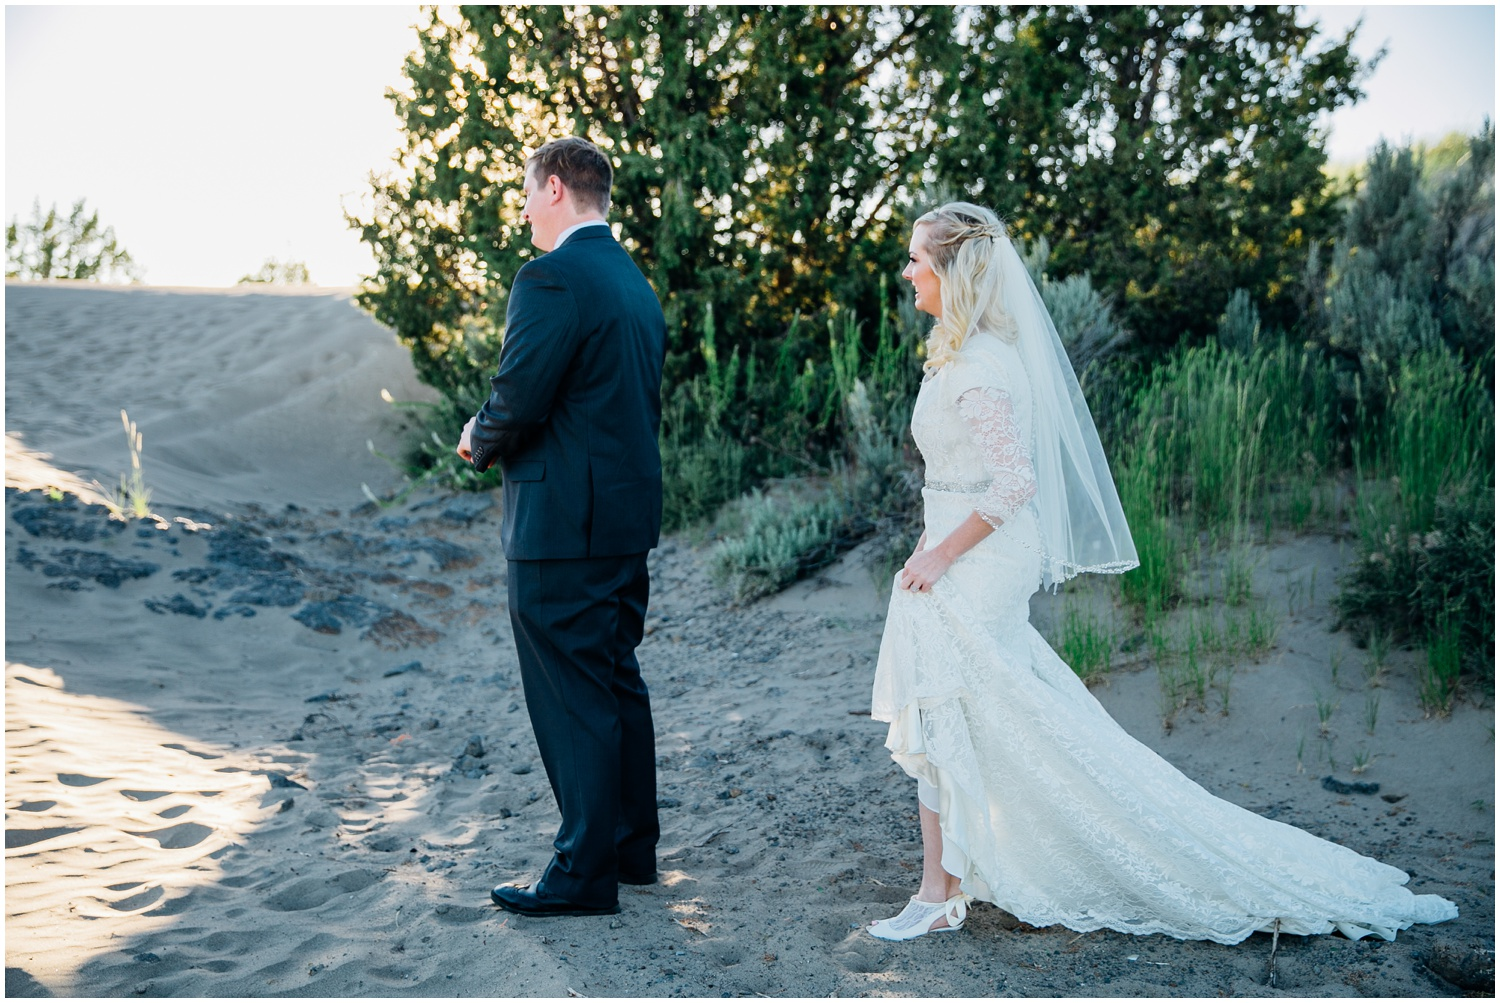 saint-anthony-sand-dunes-bridals-idaho-engagements-colorado-wyoming-wedding-photographer_0705.jpg